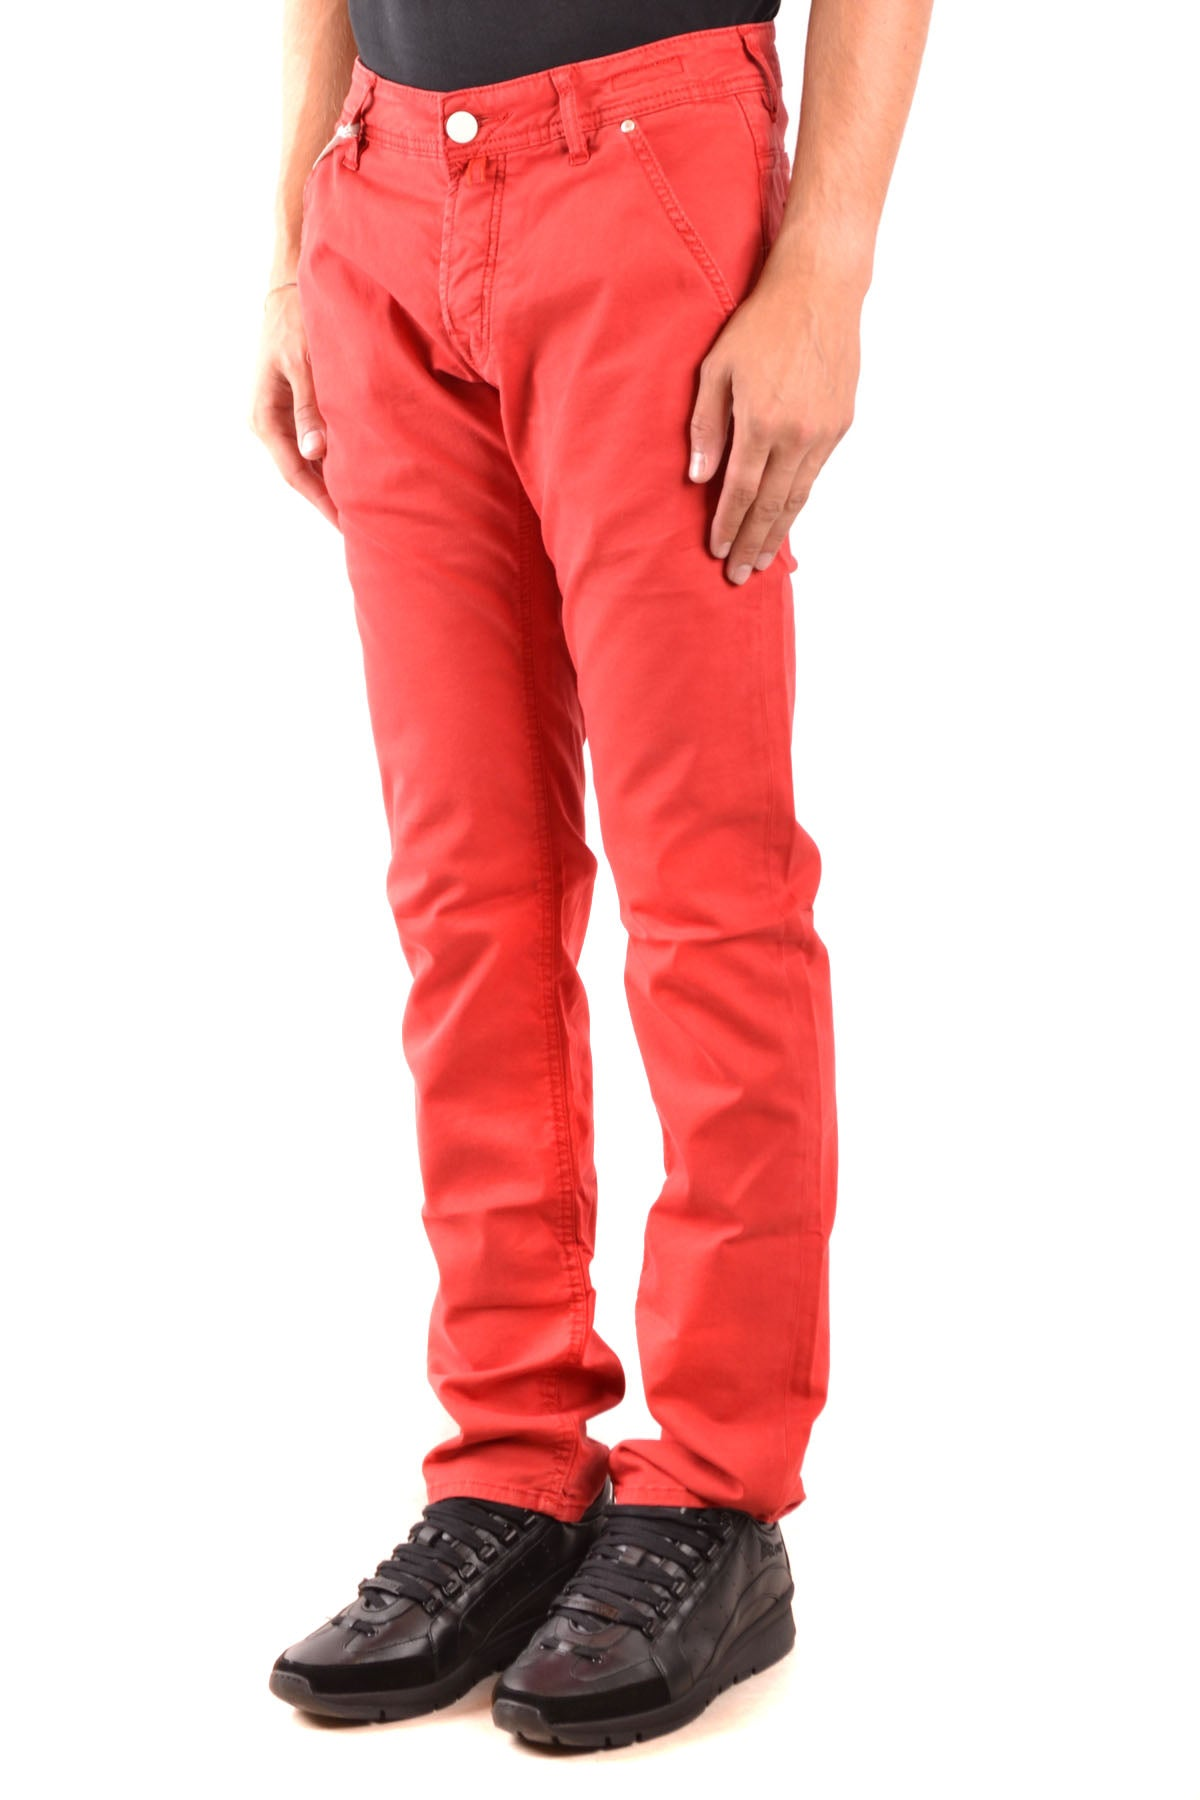 Jeans Jacob Cohen--Product Details Terms: New With LabelYear: 2019Main Color: RedGender: ManMade In: ItalyManufacturer Part Number: 00566V-5101Size: UsSeason: Spring / SummerClothing Type: JeansComposition: Cotton 55%, Elastane 3%, Lyocell 42%-Keyomi-Sook